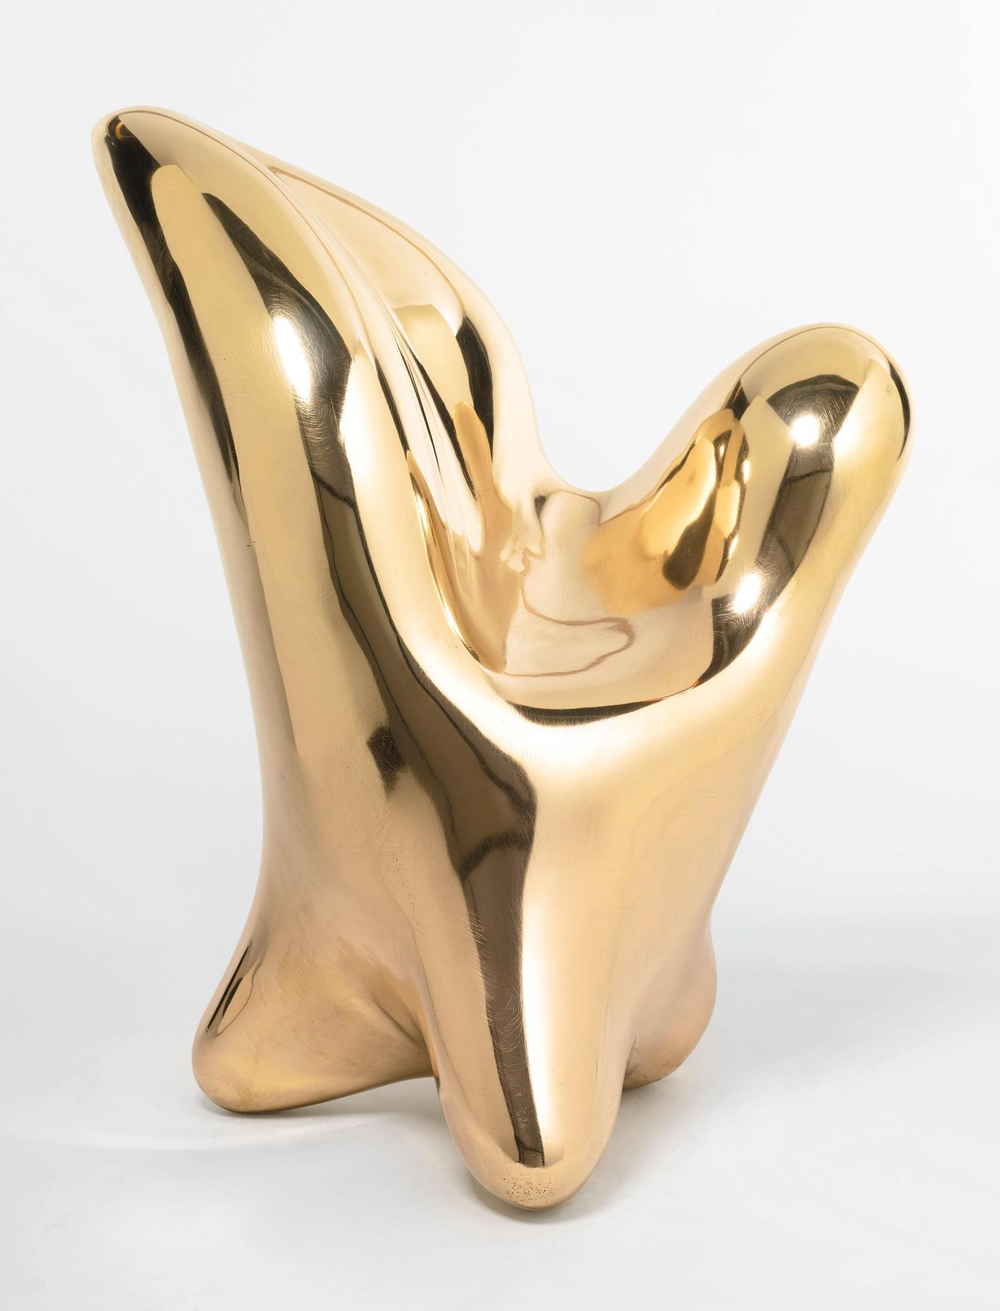 Jean Hans Arp, Artist, Sculpture, Inspiration, Bronze, Cast, Oracle Fox